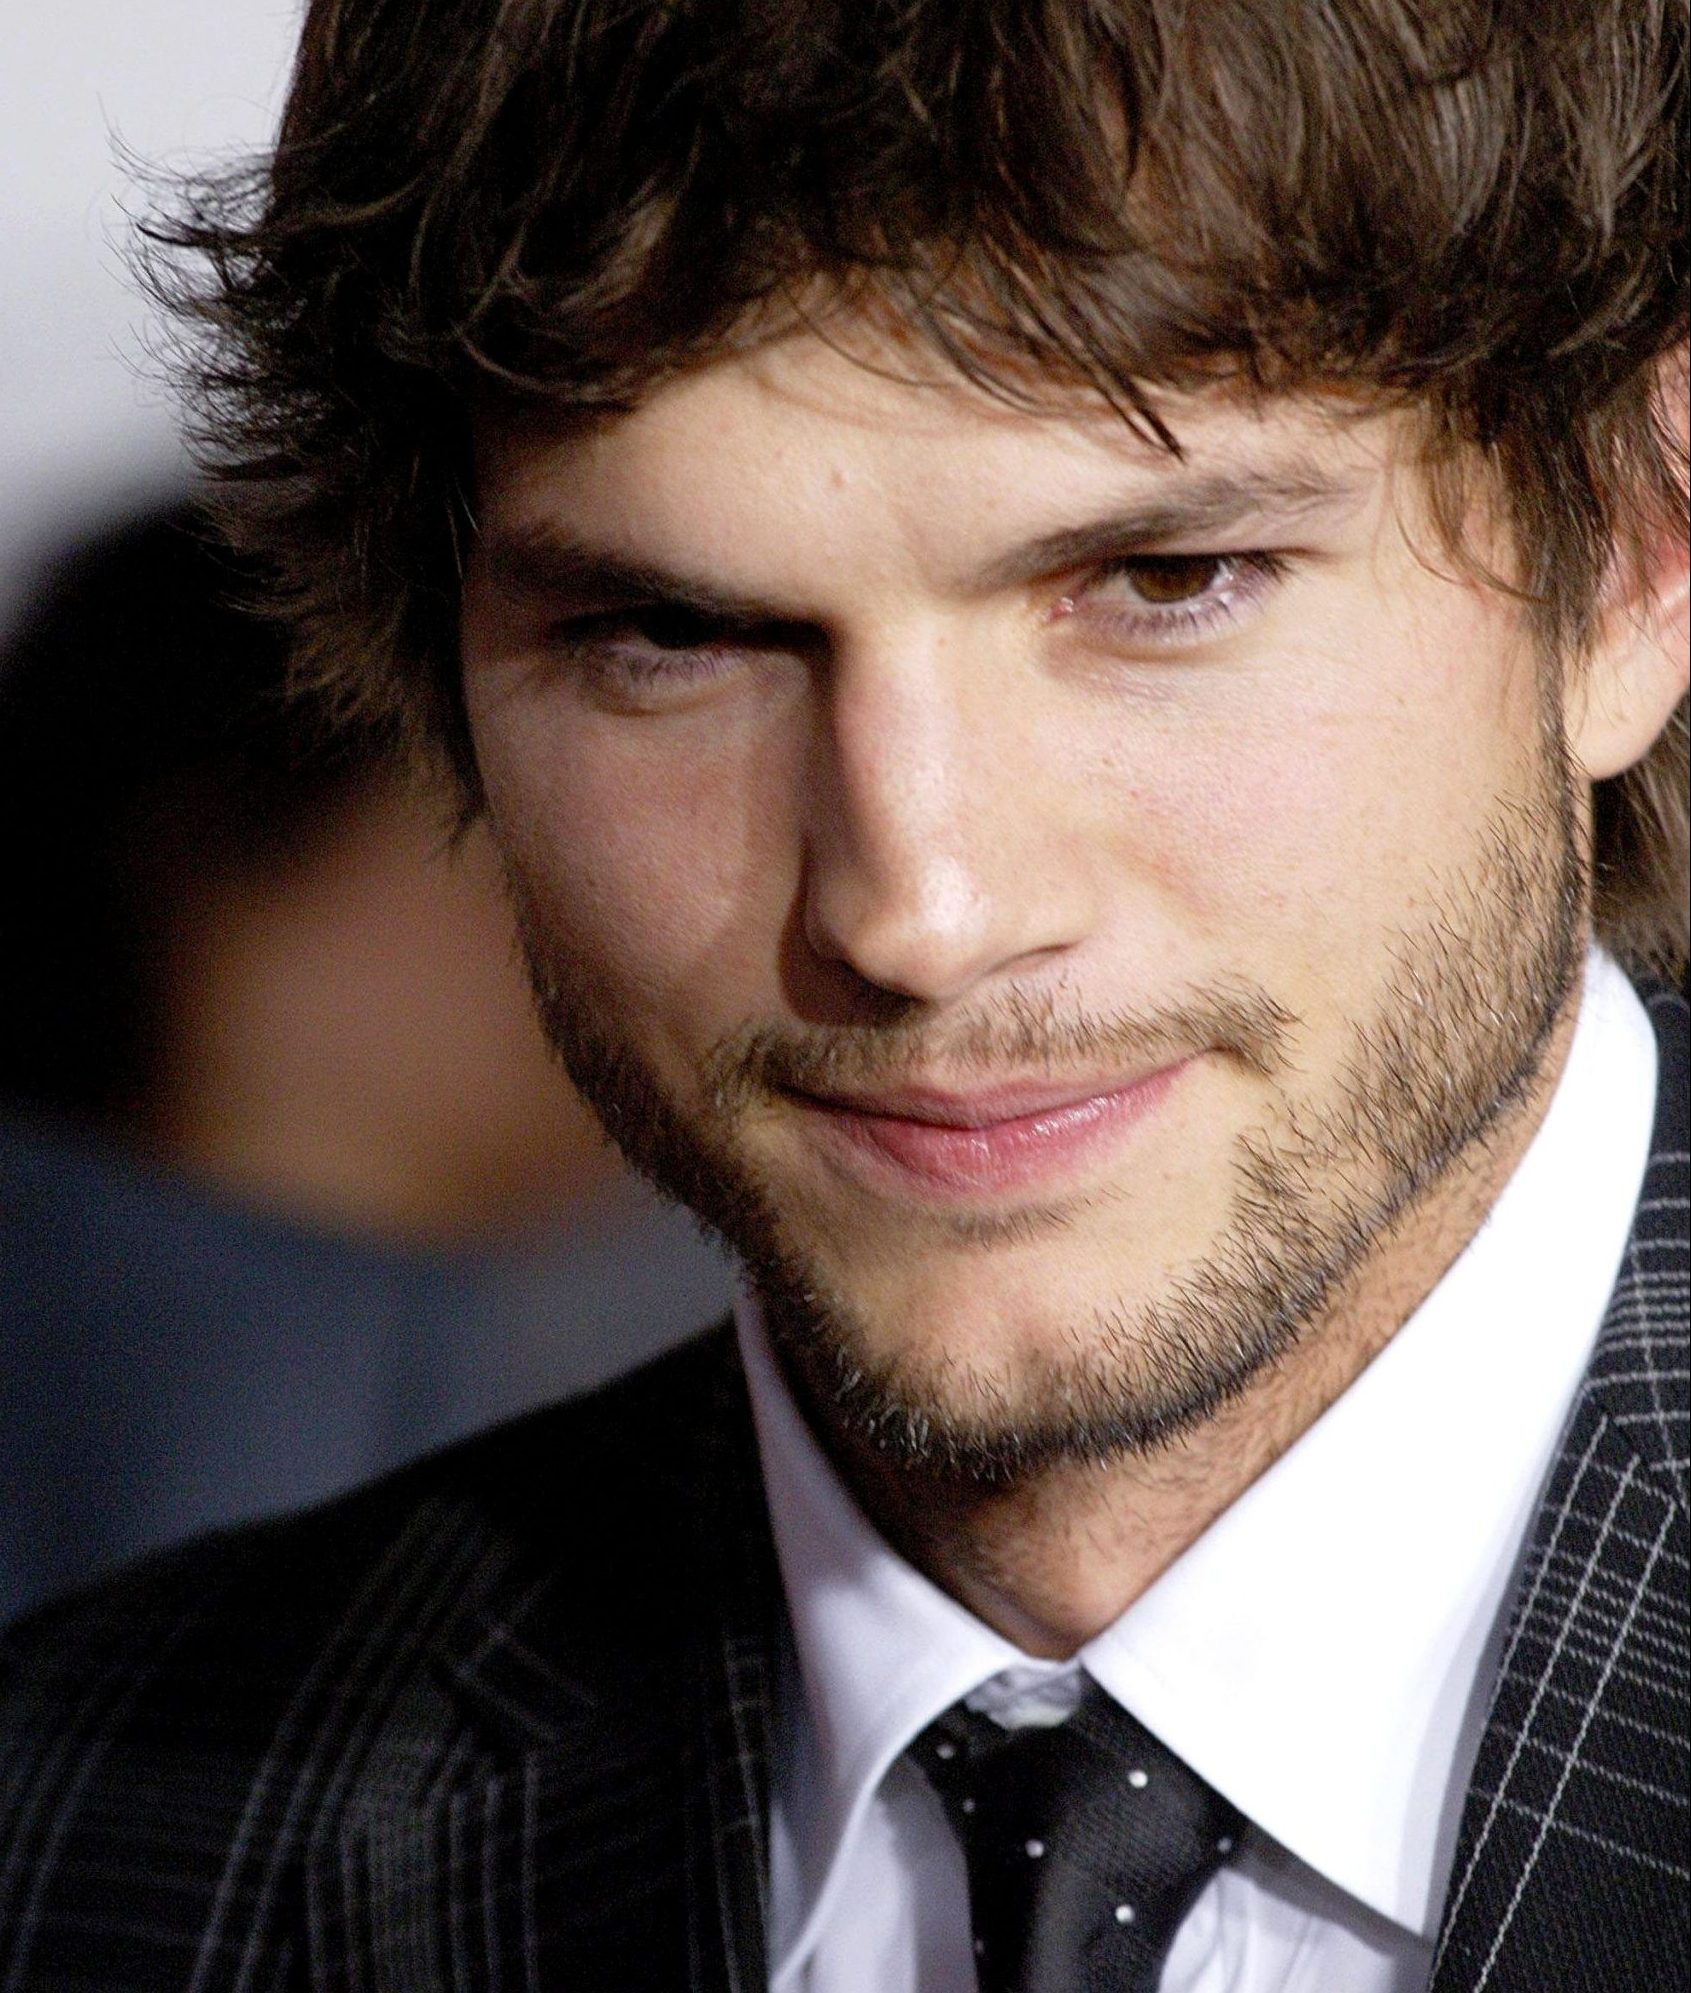 A close up of Ashton Kutcher's face. He has stubble on his upper lip, chin and jawline andwears a white shirt, black tie and dark suit jacket.